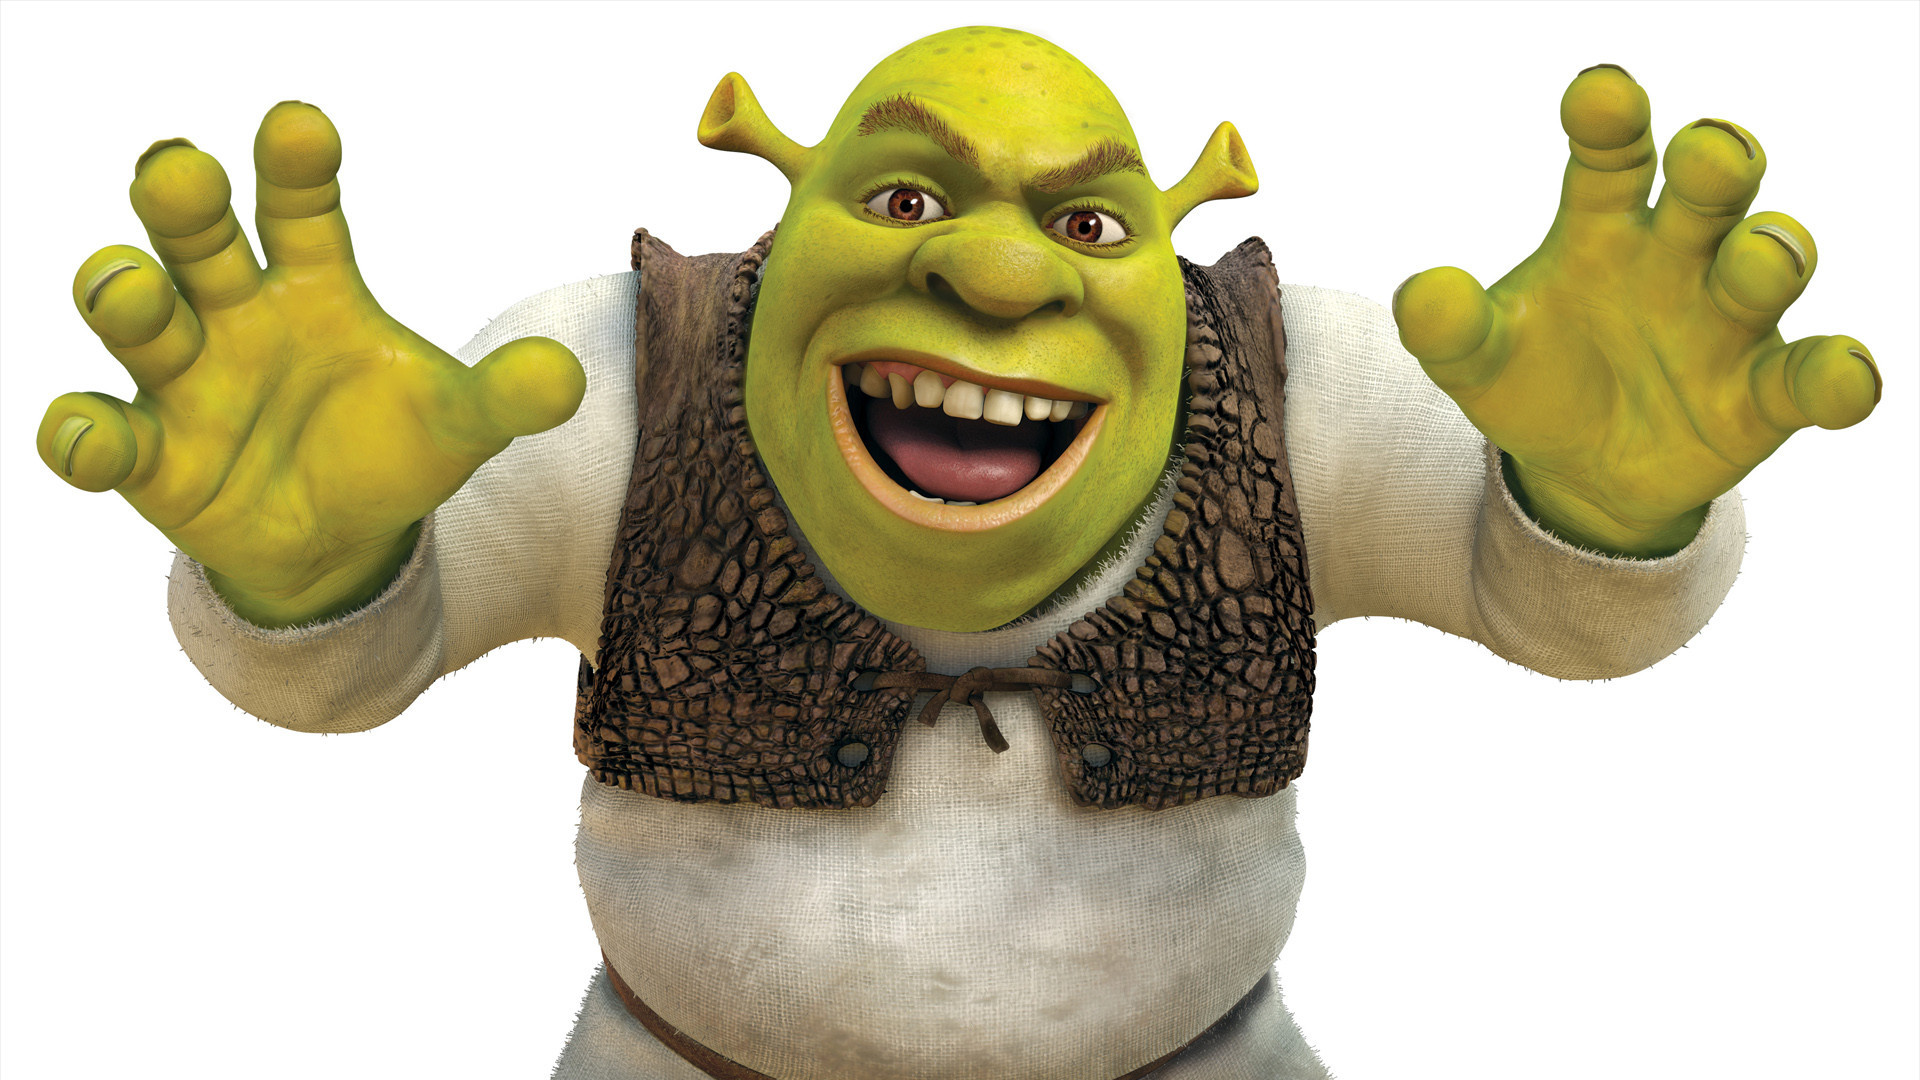 What do you think of another 'Shrek' film?